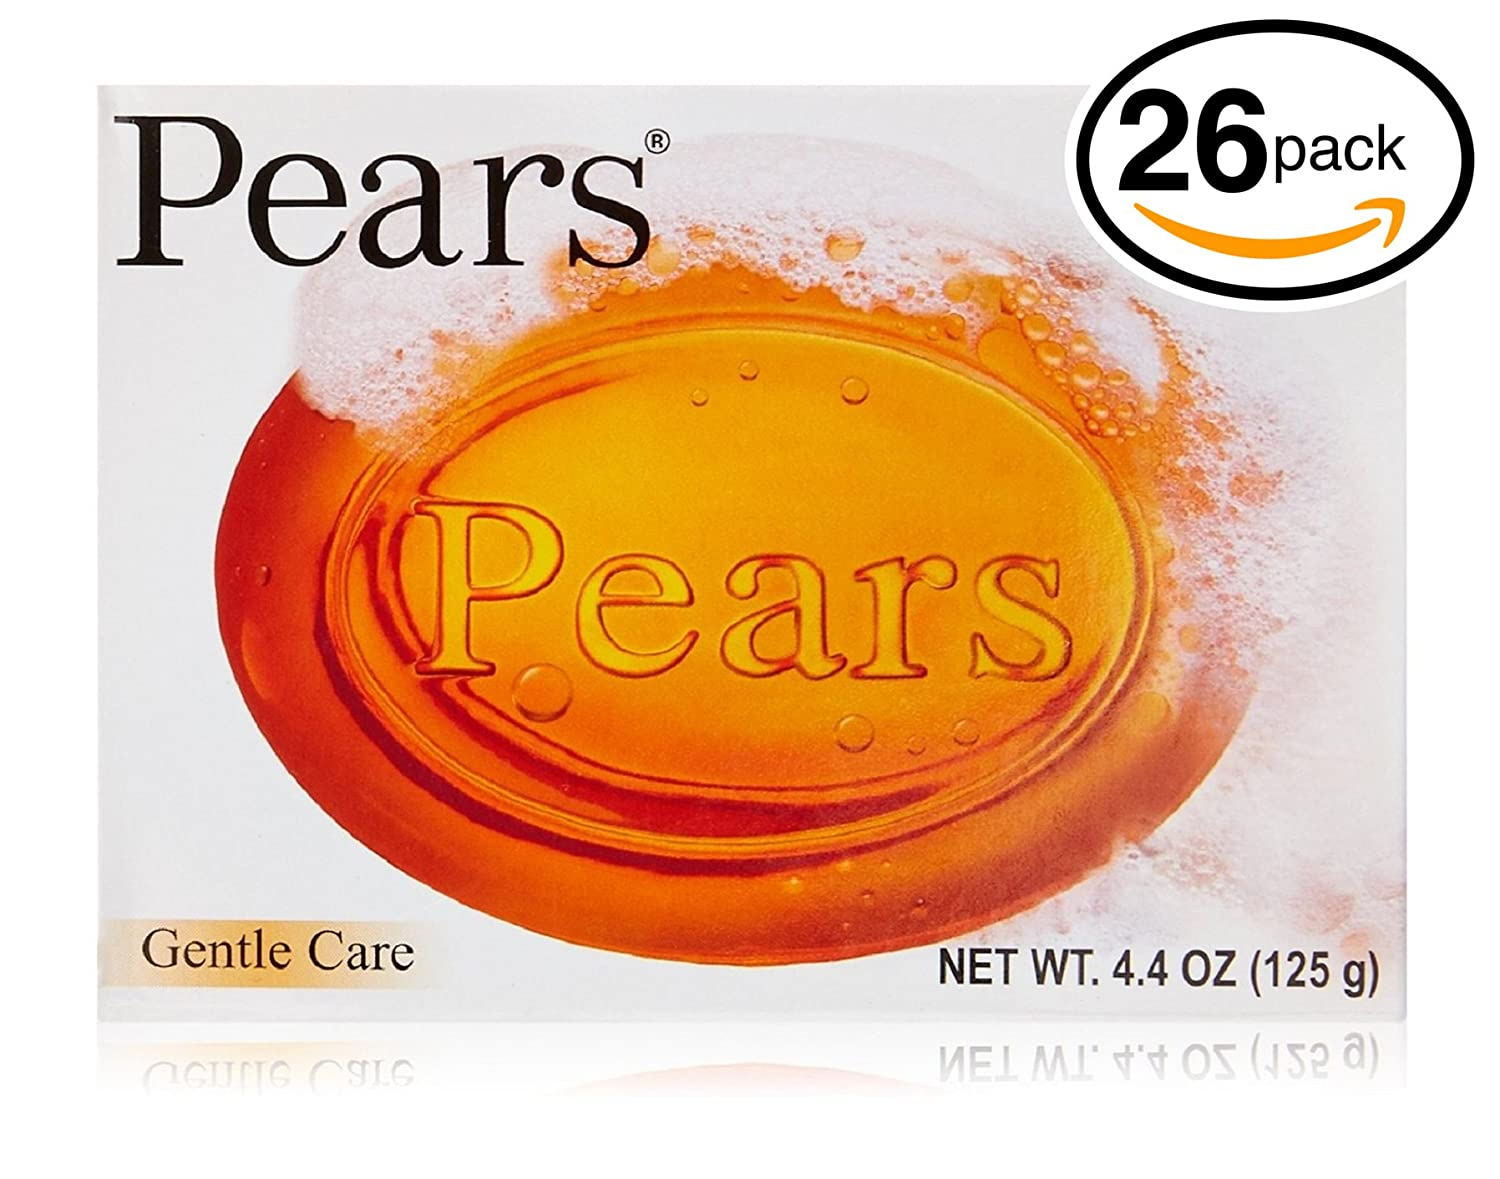 Pears Oil-Clear Soap Each Bar 4.4 Oz Pack of 26 Bars 100gm Each Bar Pack of 26 Bars , Transparent Spearmint Menthol Extract